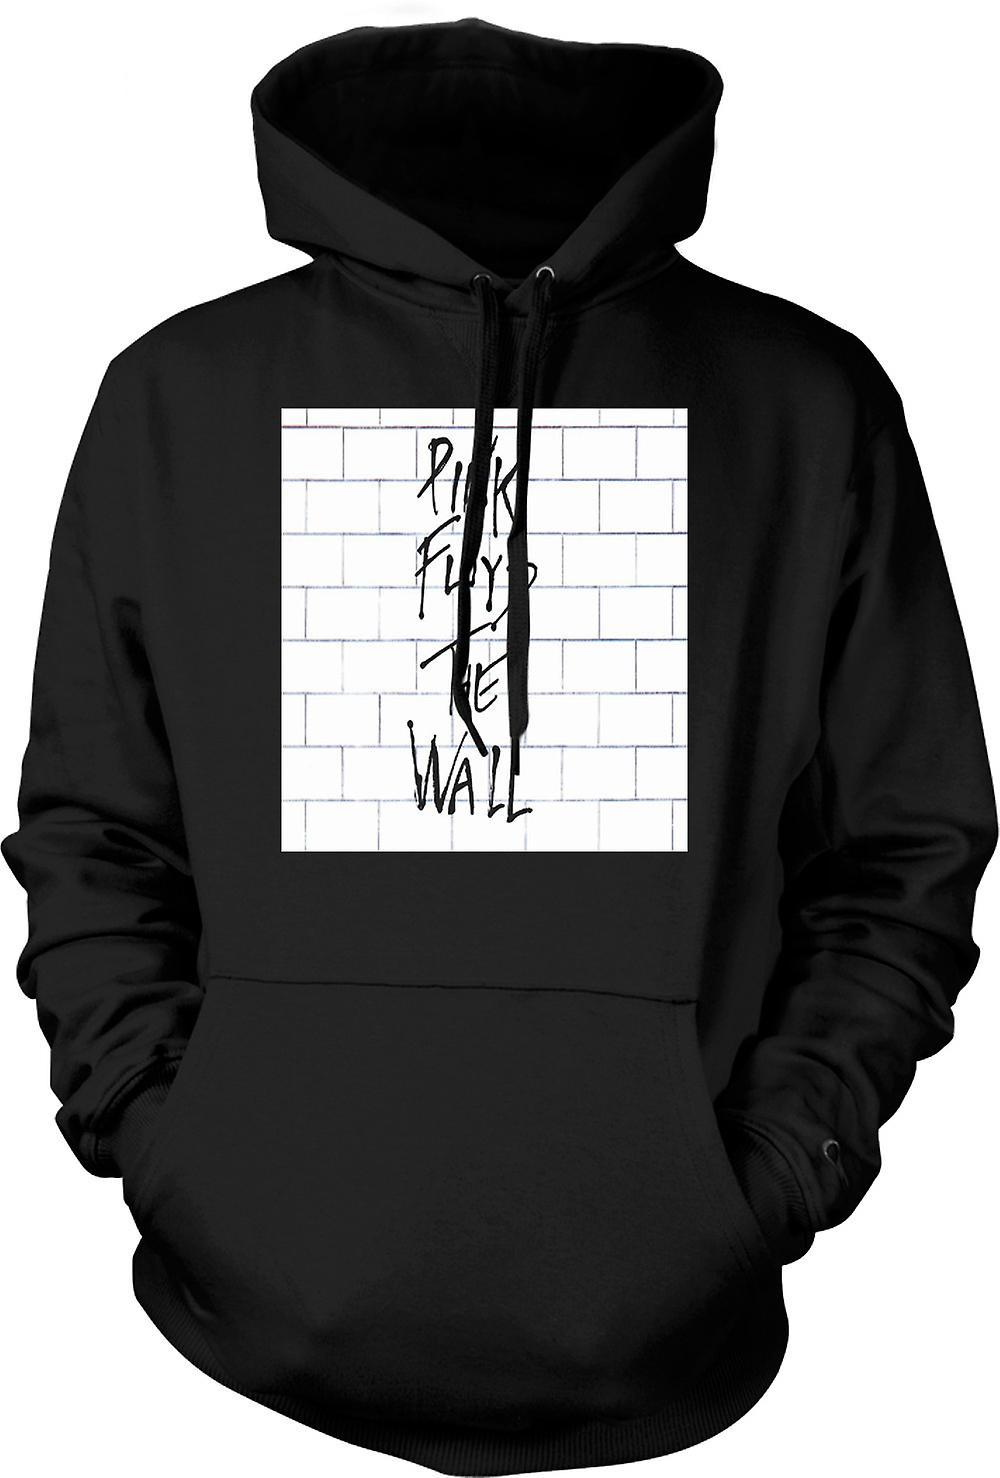 Kids Hoodie - Pink Floyd - The Wall - Album Cover